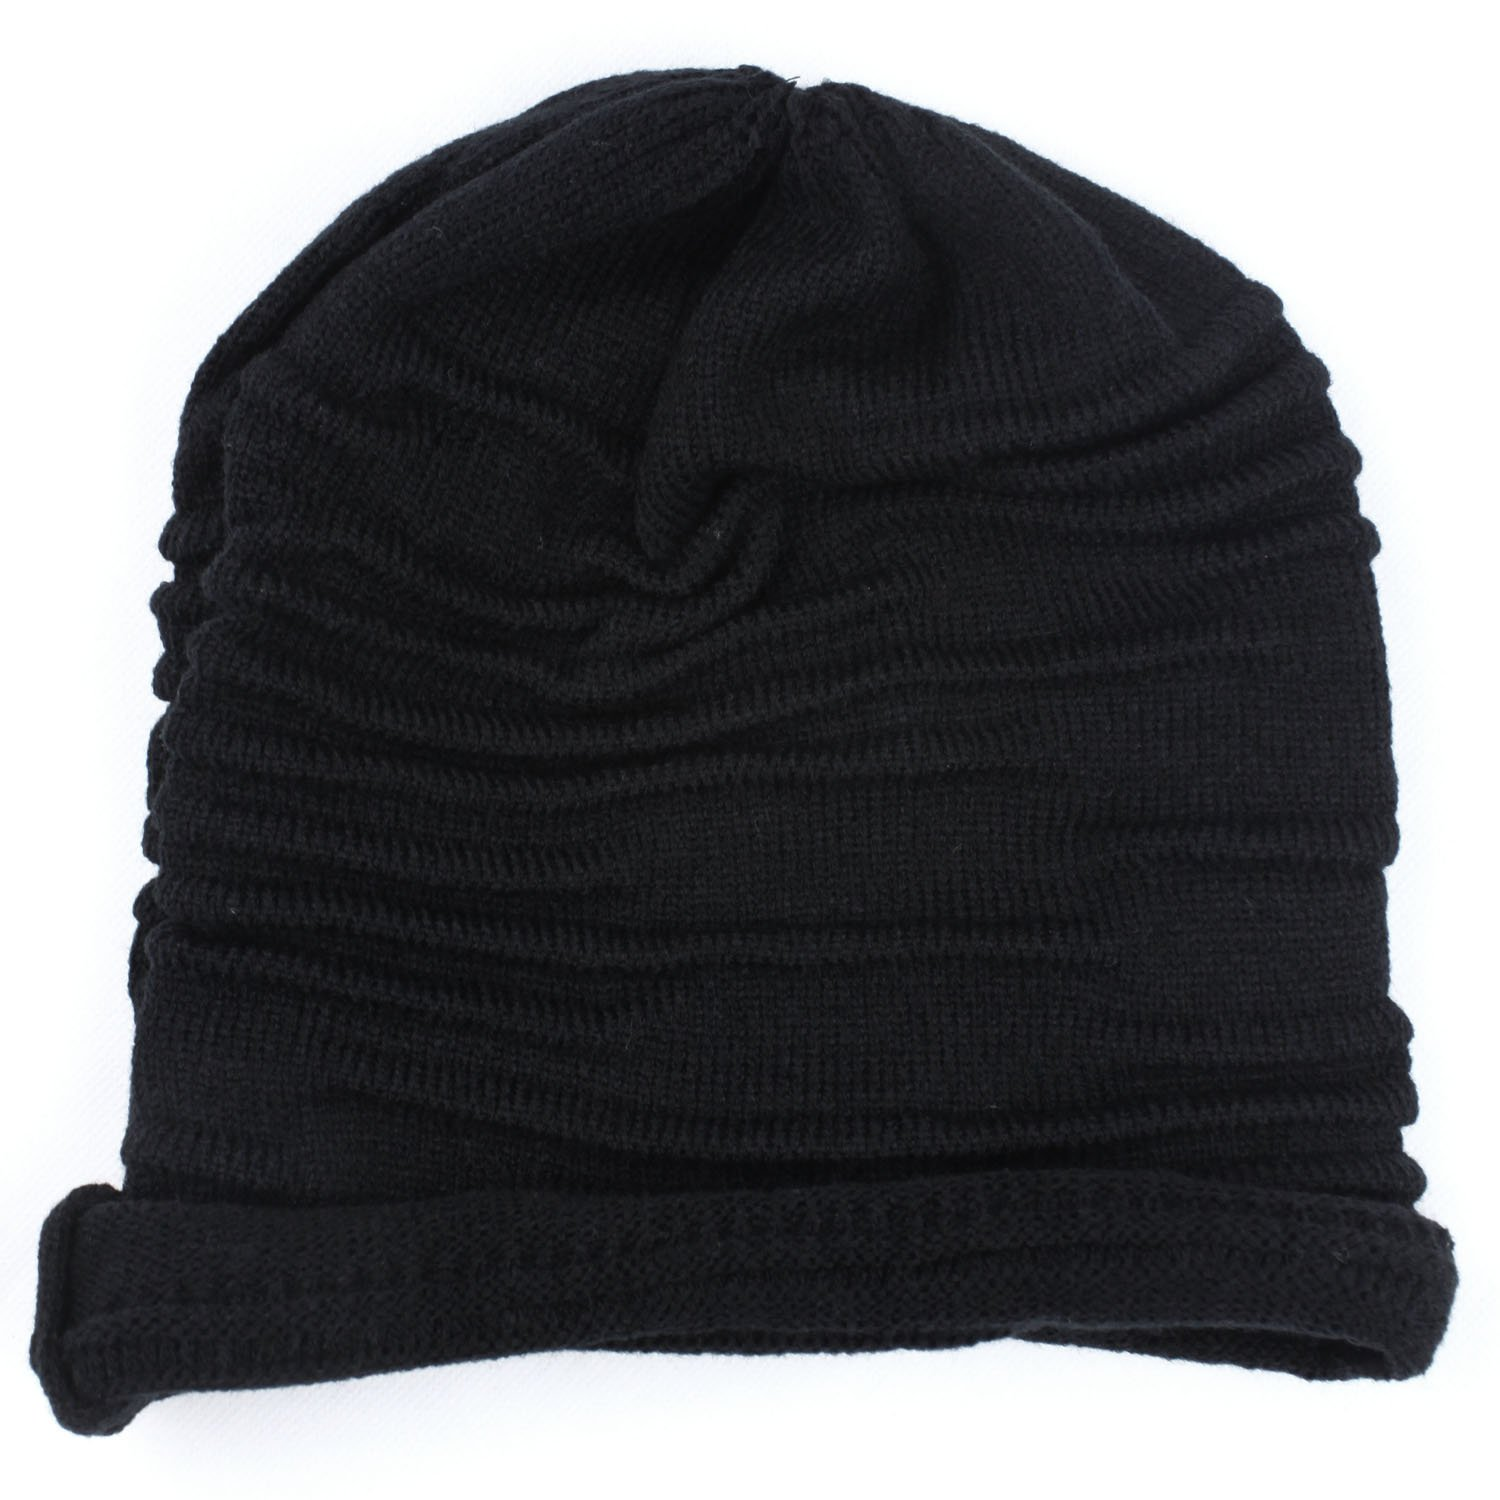 Winter Unisex Plicate Baggy Beanie Knit Crochet Ski Hat Oversized Slouch Cap Black купить